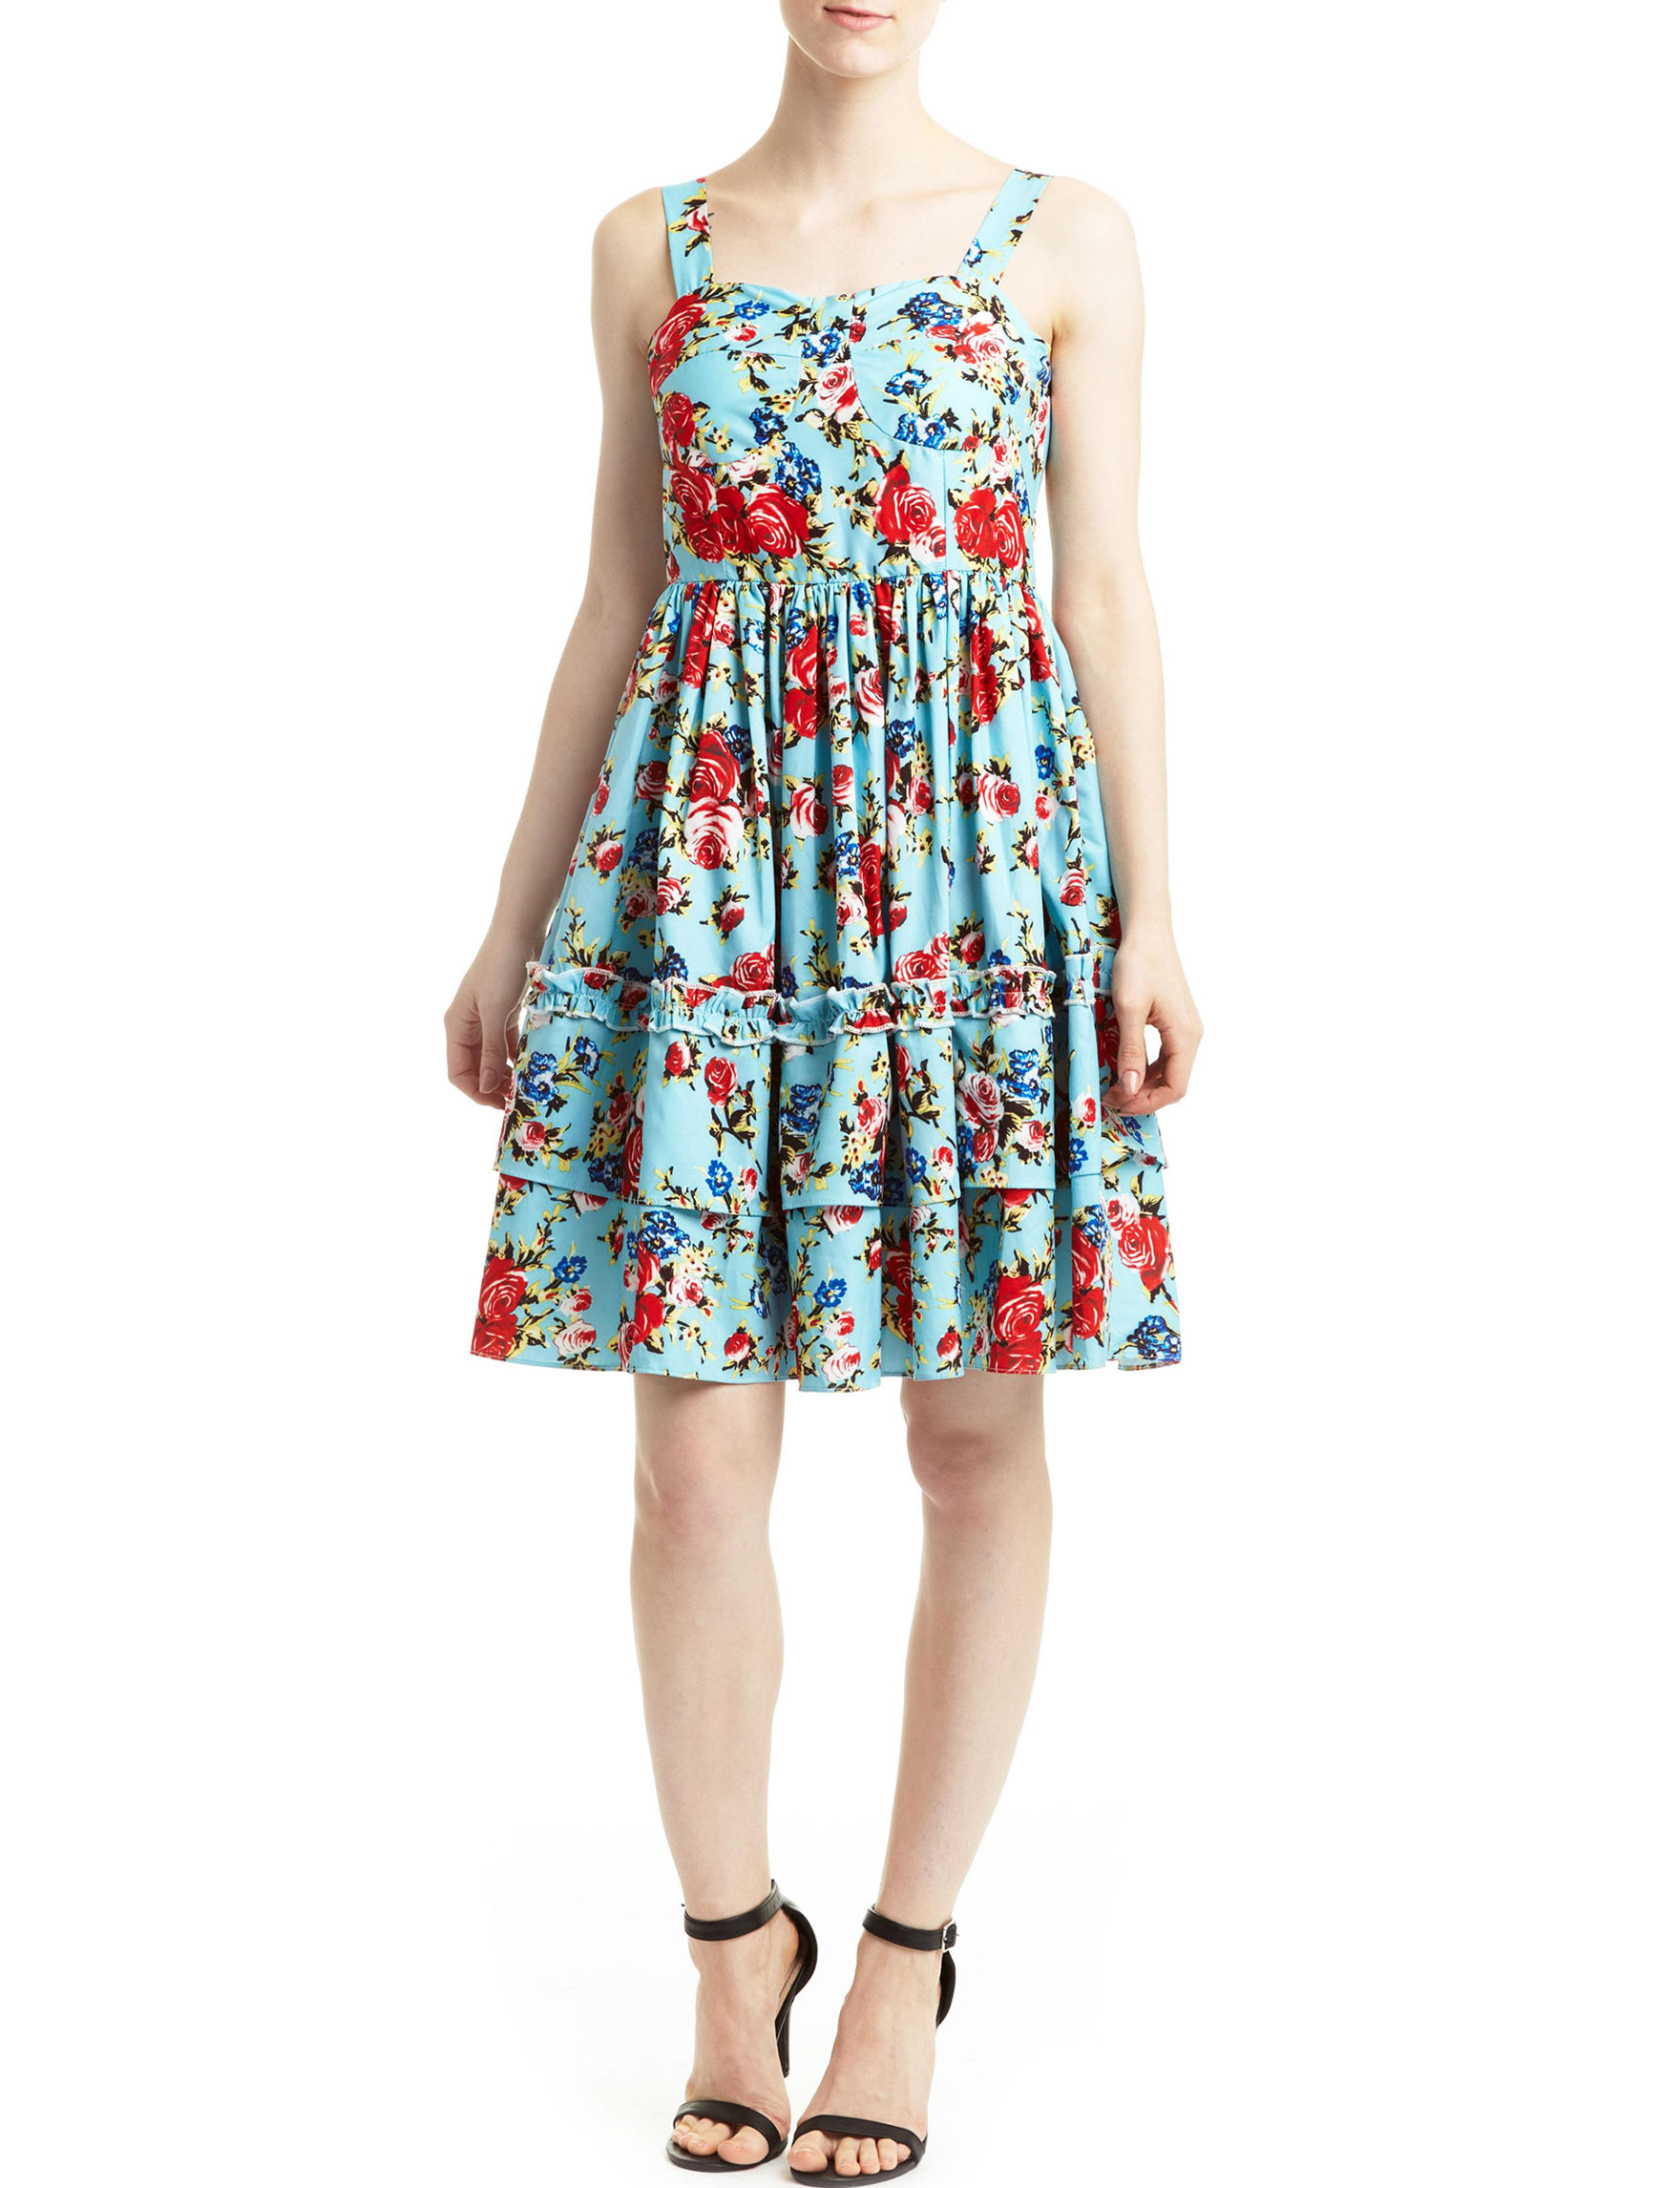 Romeo + Juliet Couture Turquoise Everyday & Casual Fit & Flare Dresses